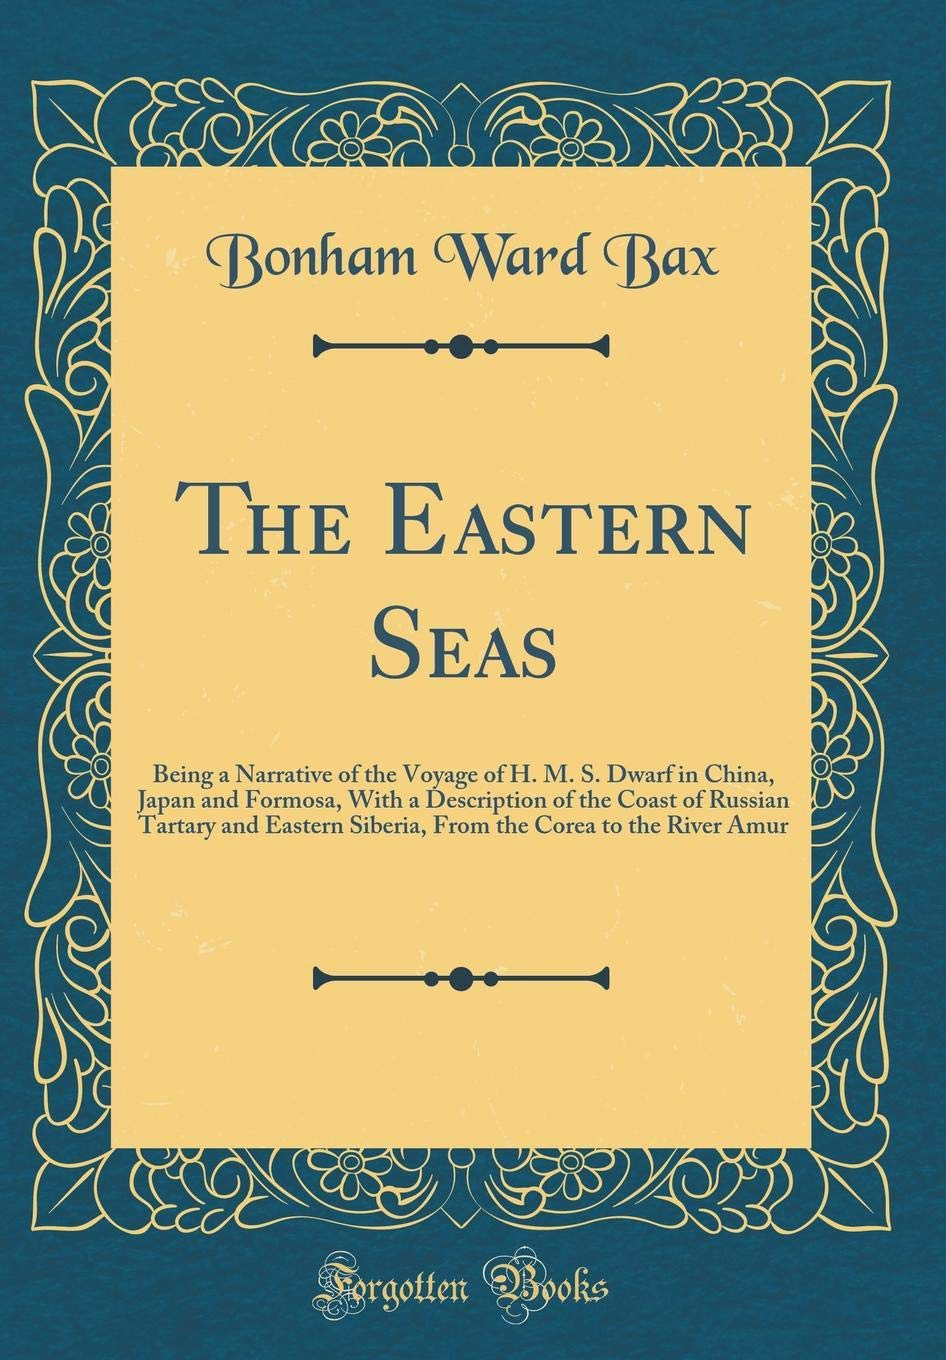 Download The Eastern Seas: Being a Narrative of the Voyage of H. M. S. Dwarf in China, Japan and Formosa, With a Description of the Coast of Russian Tartary ... the Corea to the River Amur (Classic Reprint) ebook